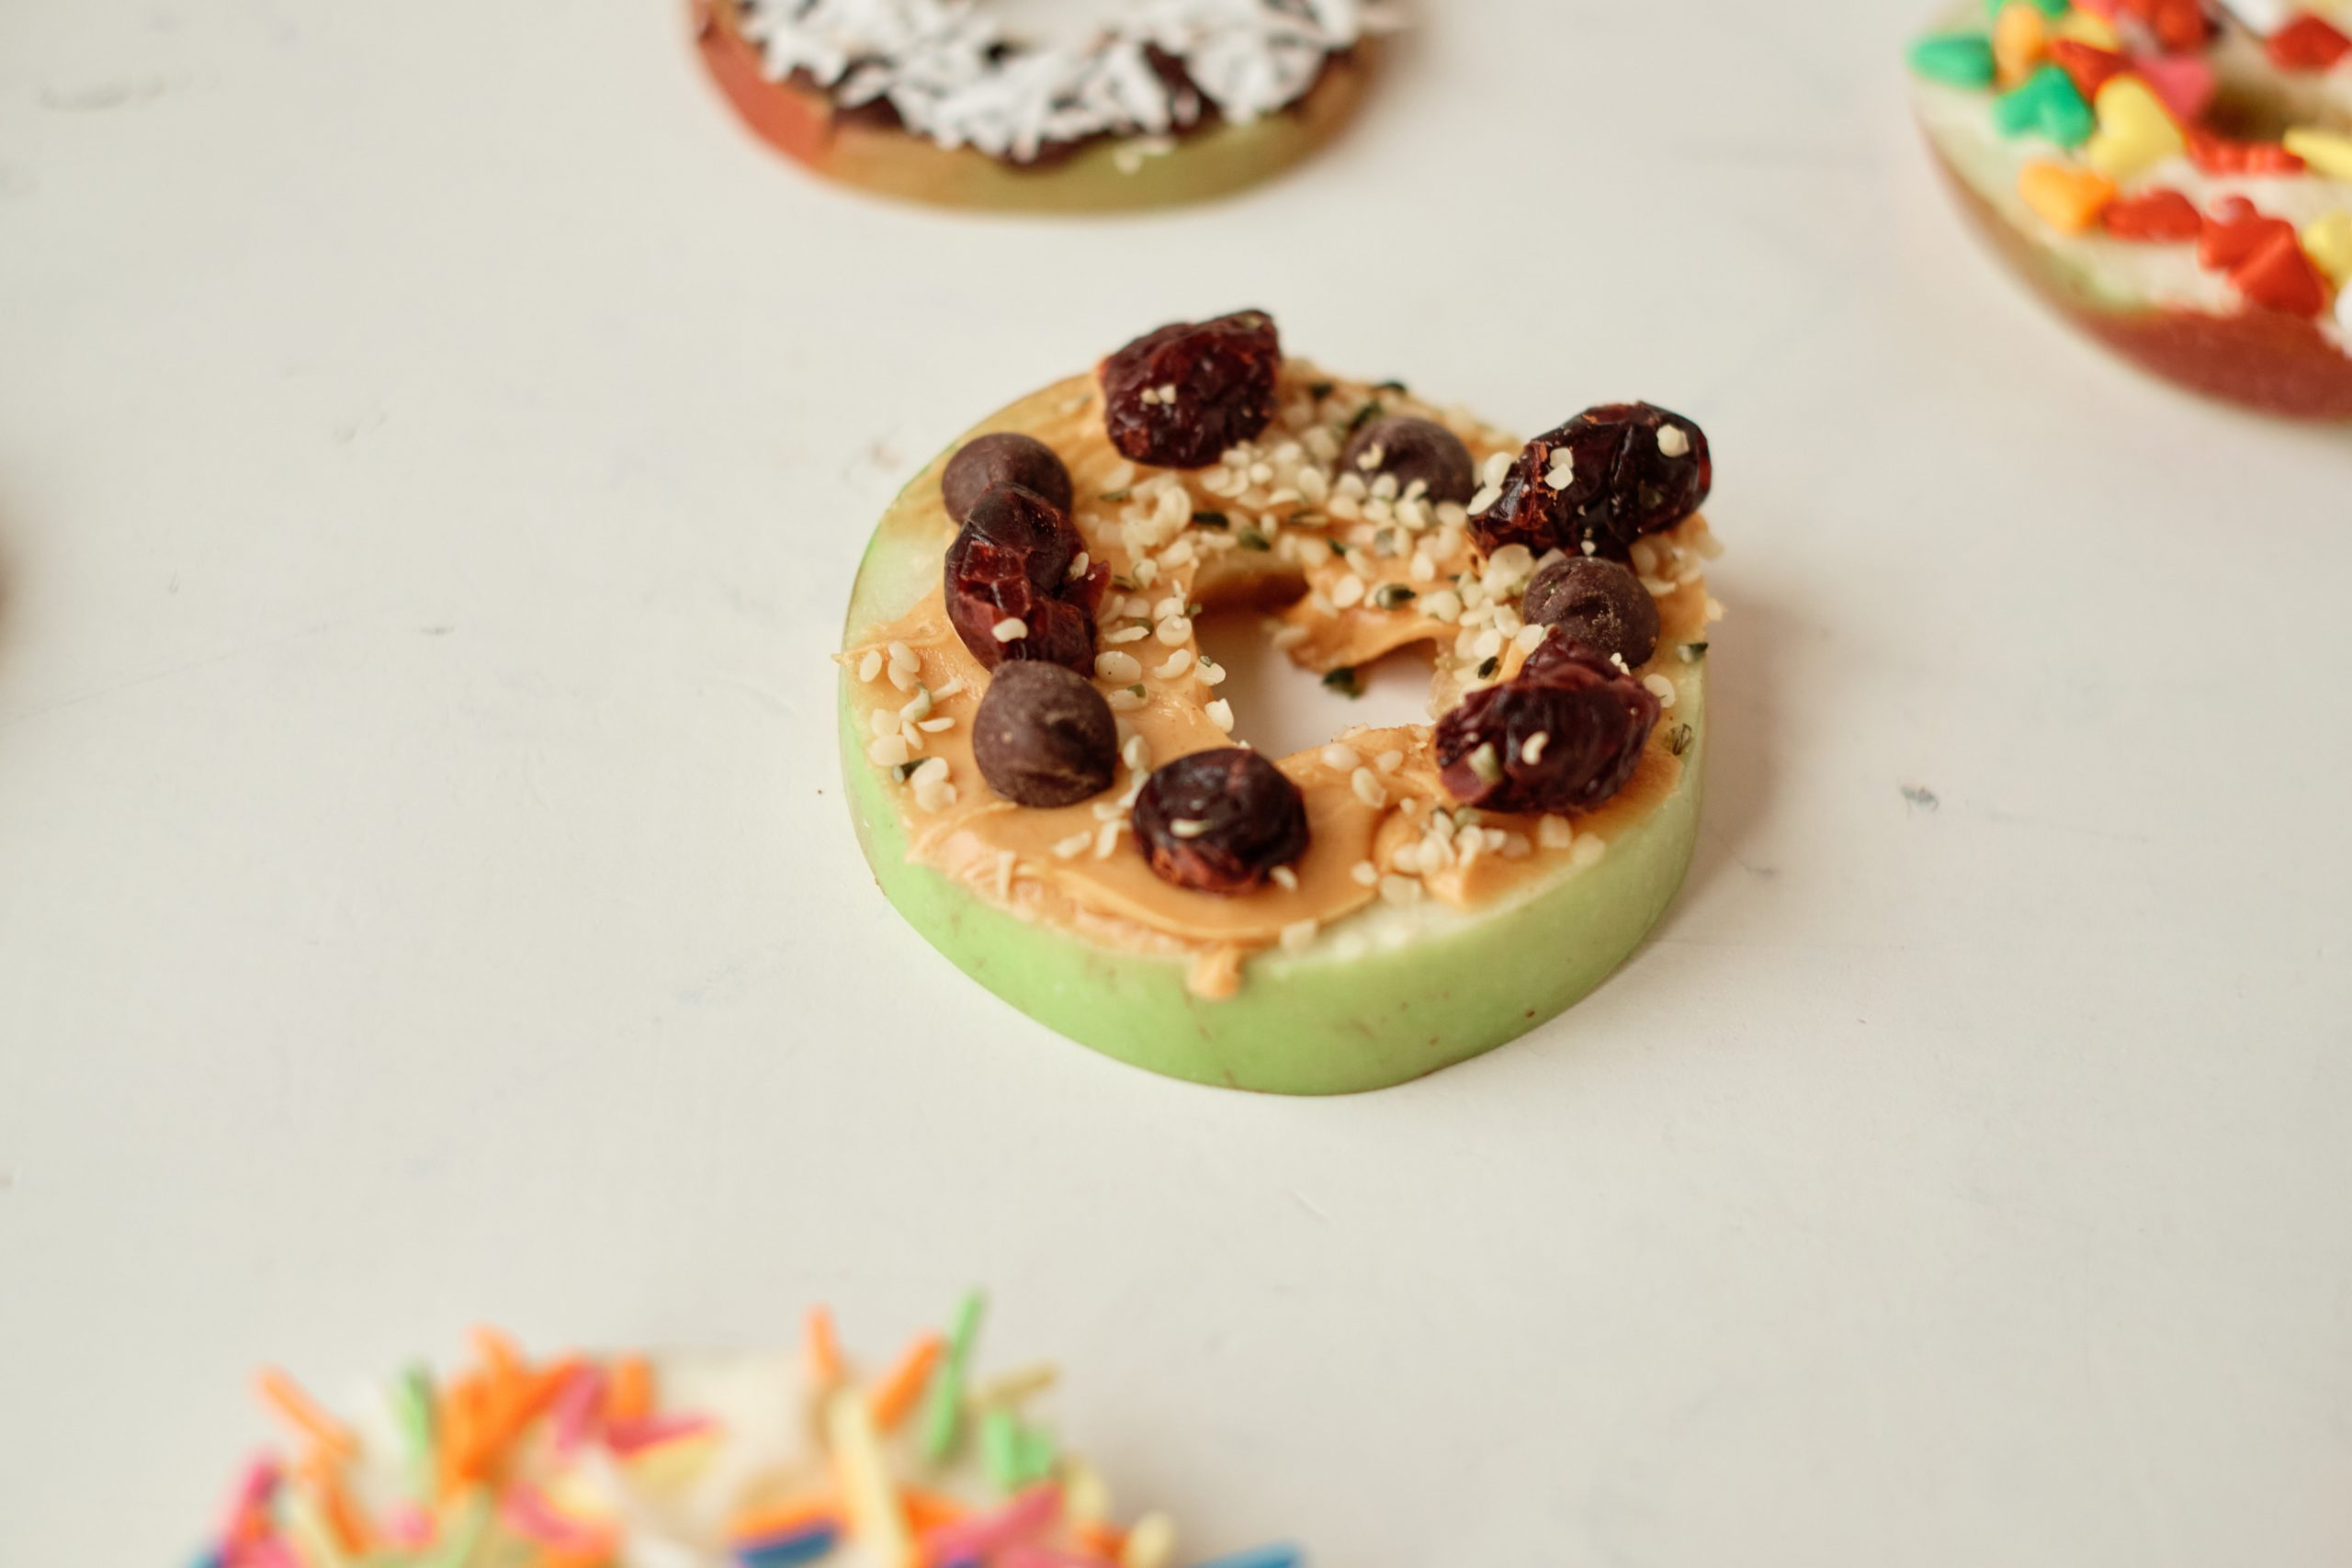 an apple donut topped with peanut butter, hemp seeds, chia seeds, and craisins